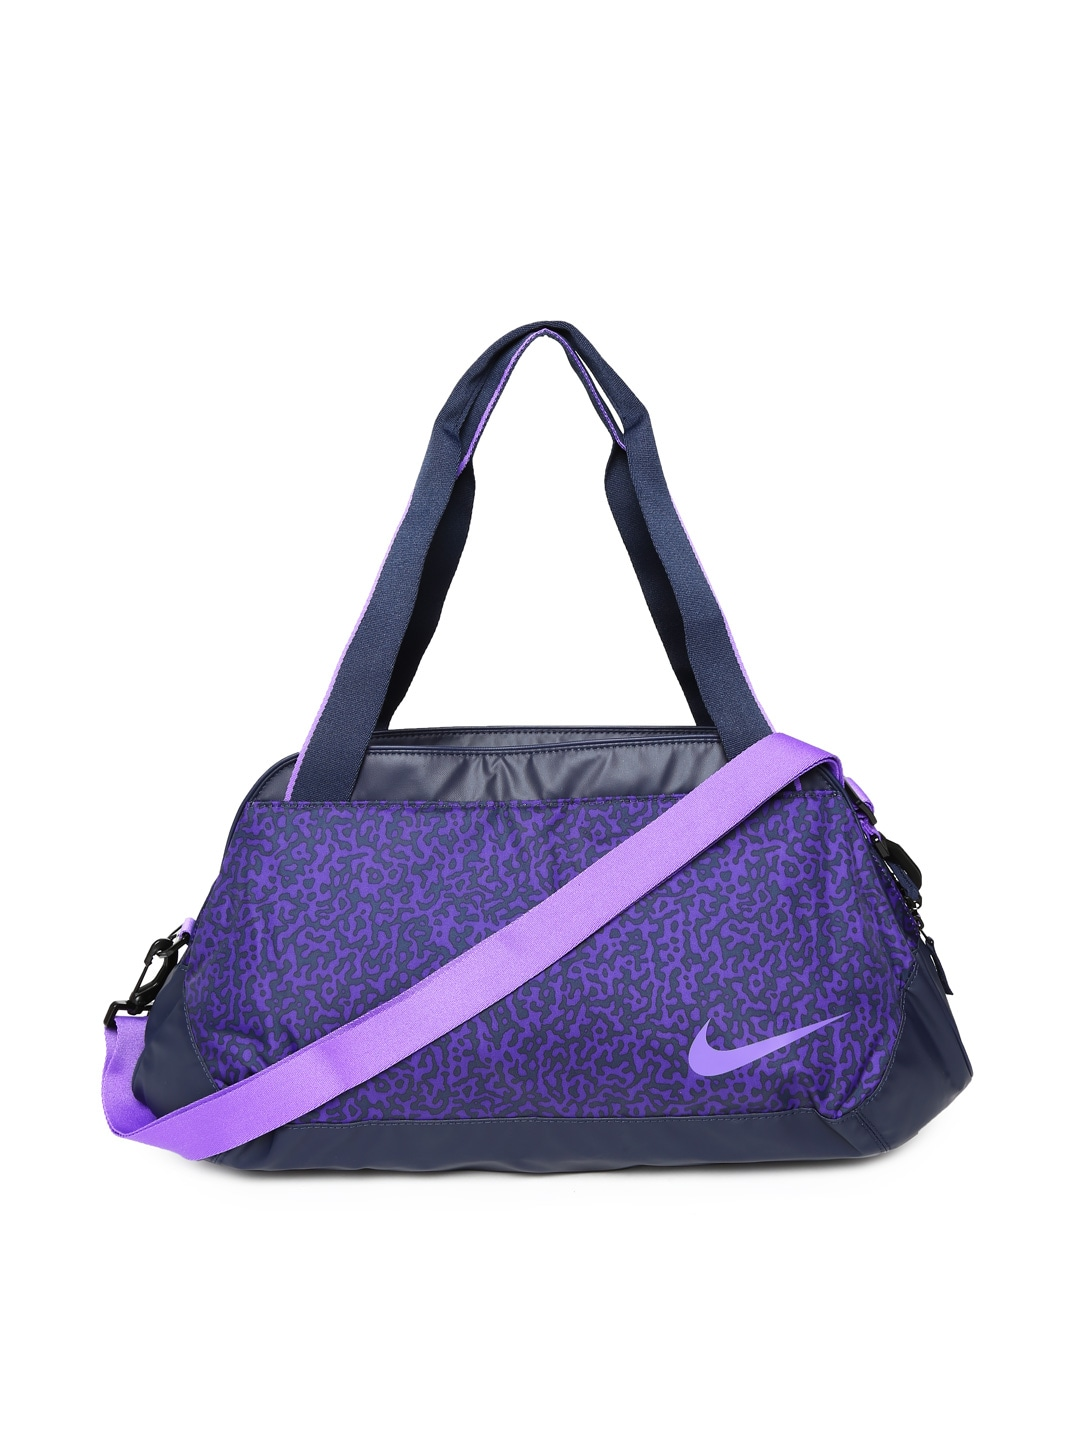 Beautiful Bags For Women  Nike Brasilia Small Duffel Bag  My Choes  Fashion